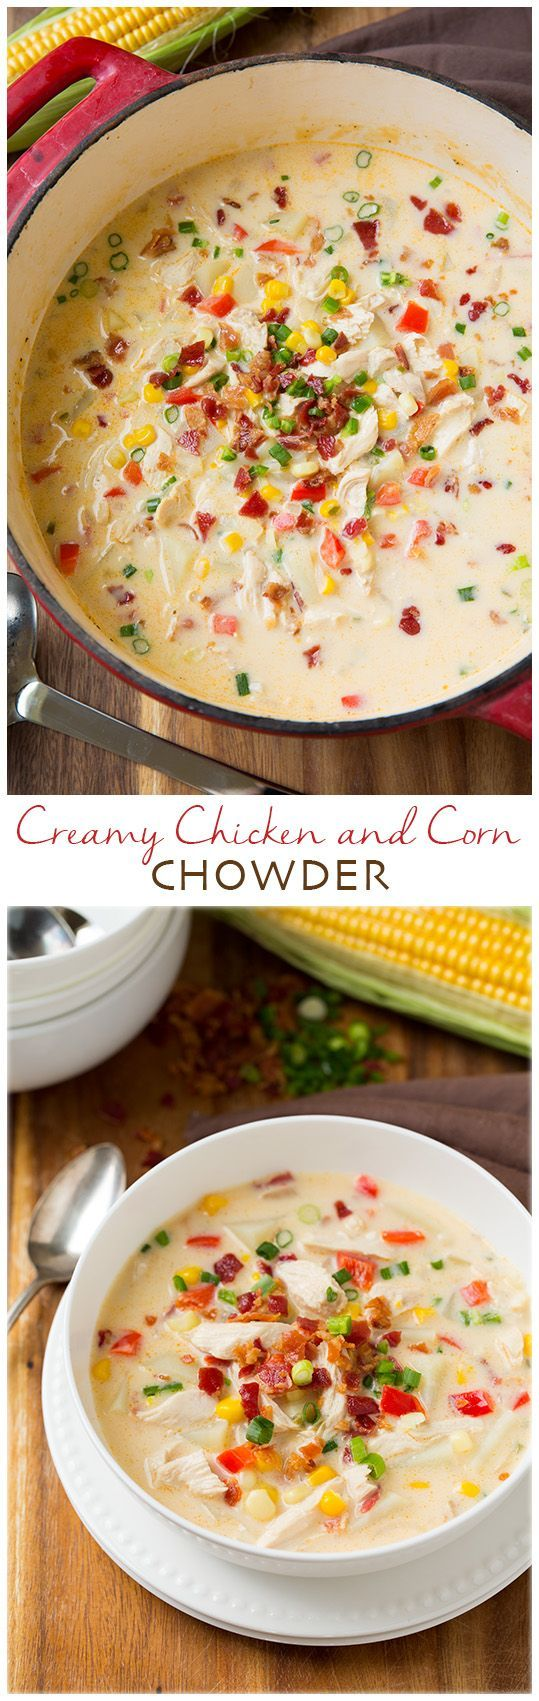 Creamy Chicken and Corn Chowder (with Bacon!) - everyone in my family loved this soup, picky eaters included! So hearty and delicious!!